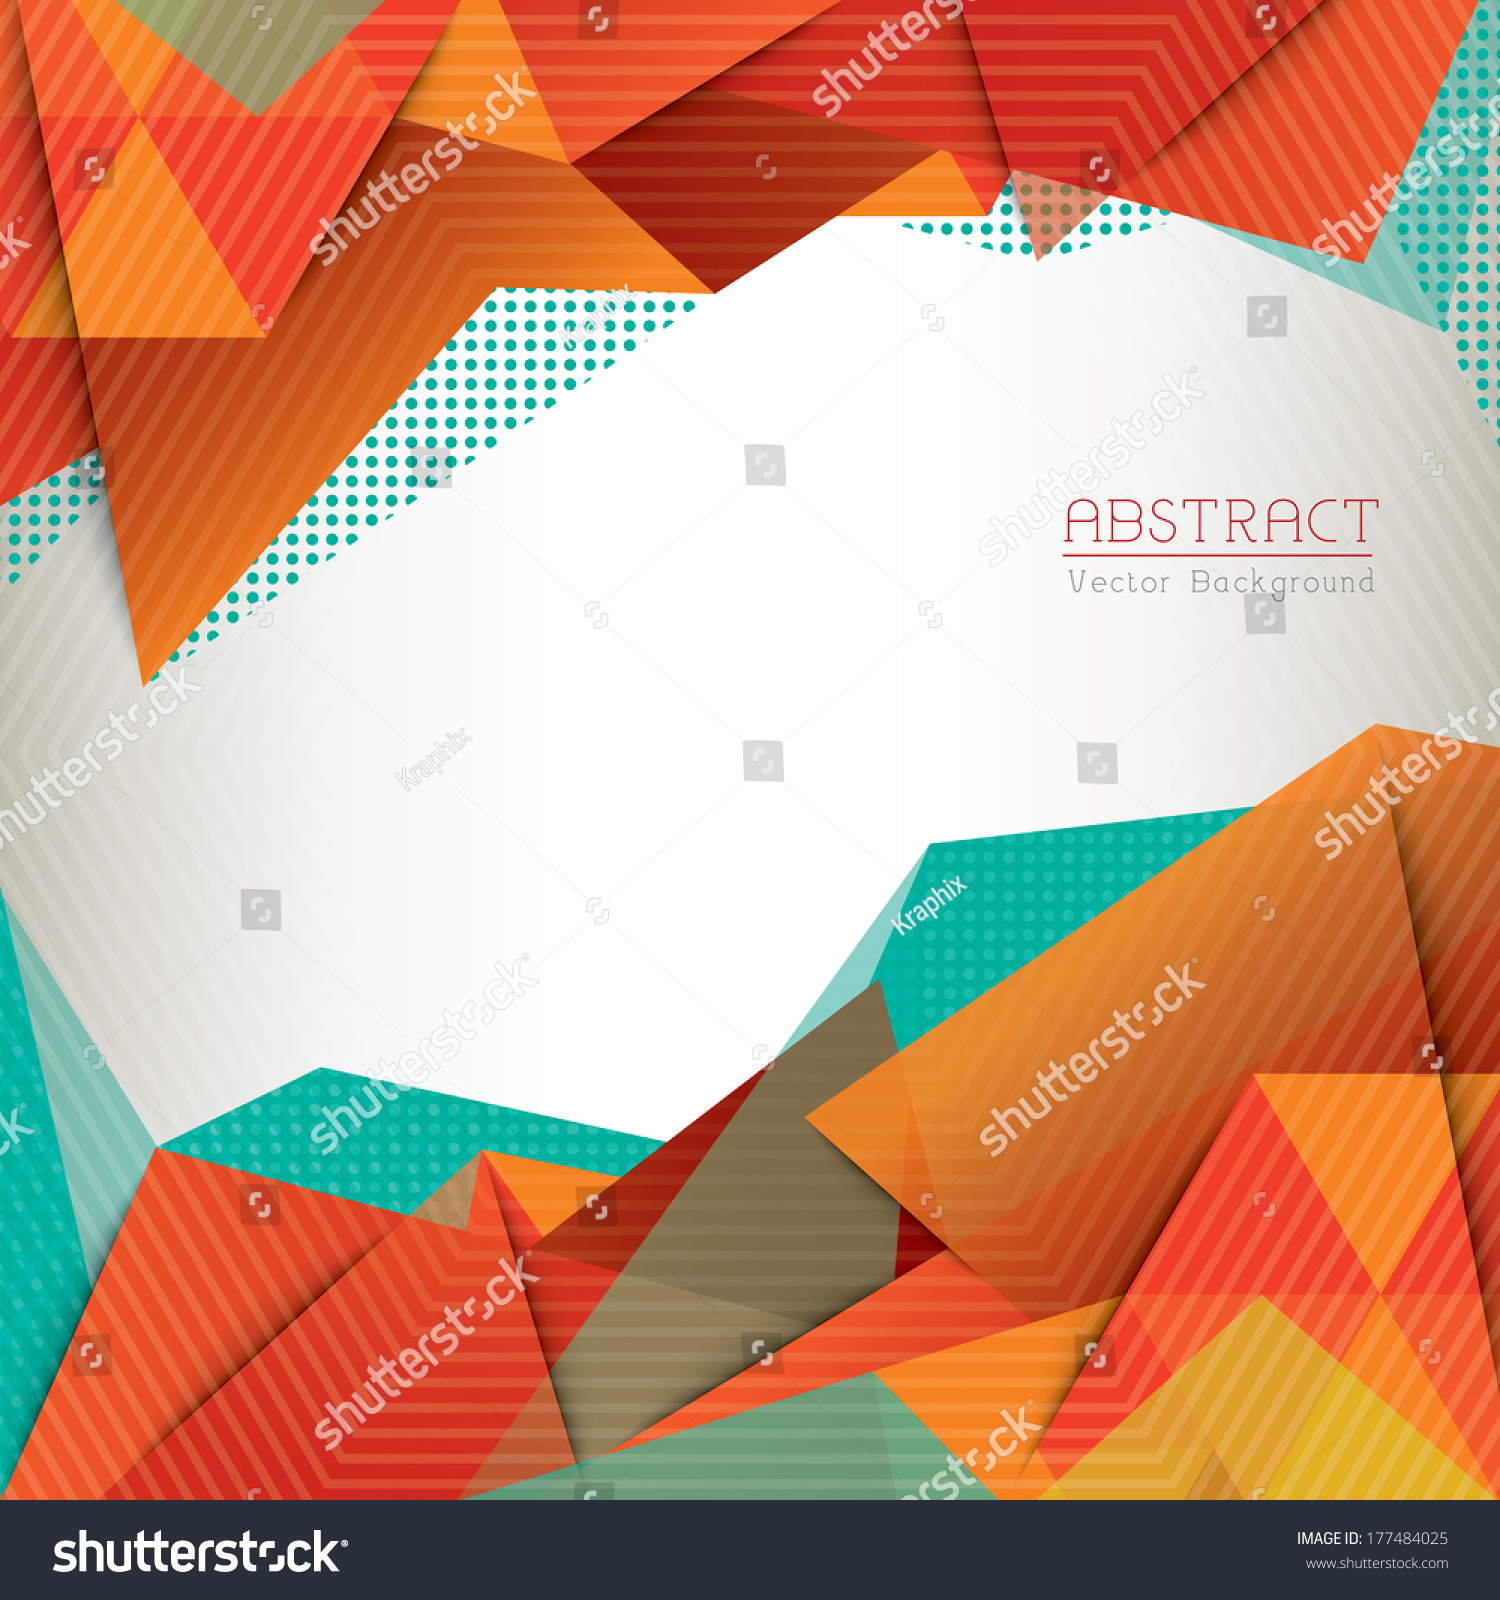 Book Cover Design Websites ~ Abstract triangle shape background layout web stock vector